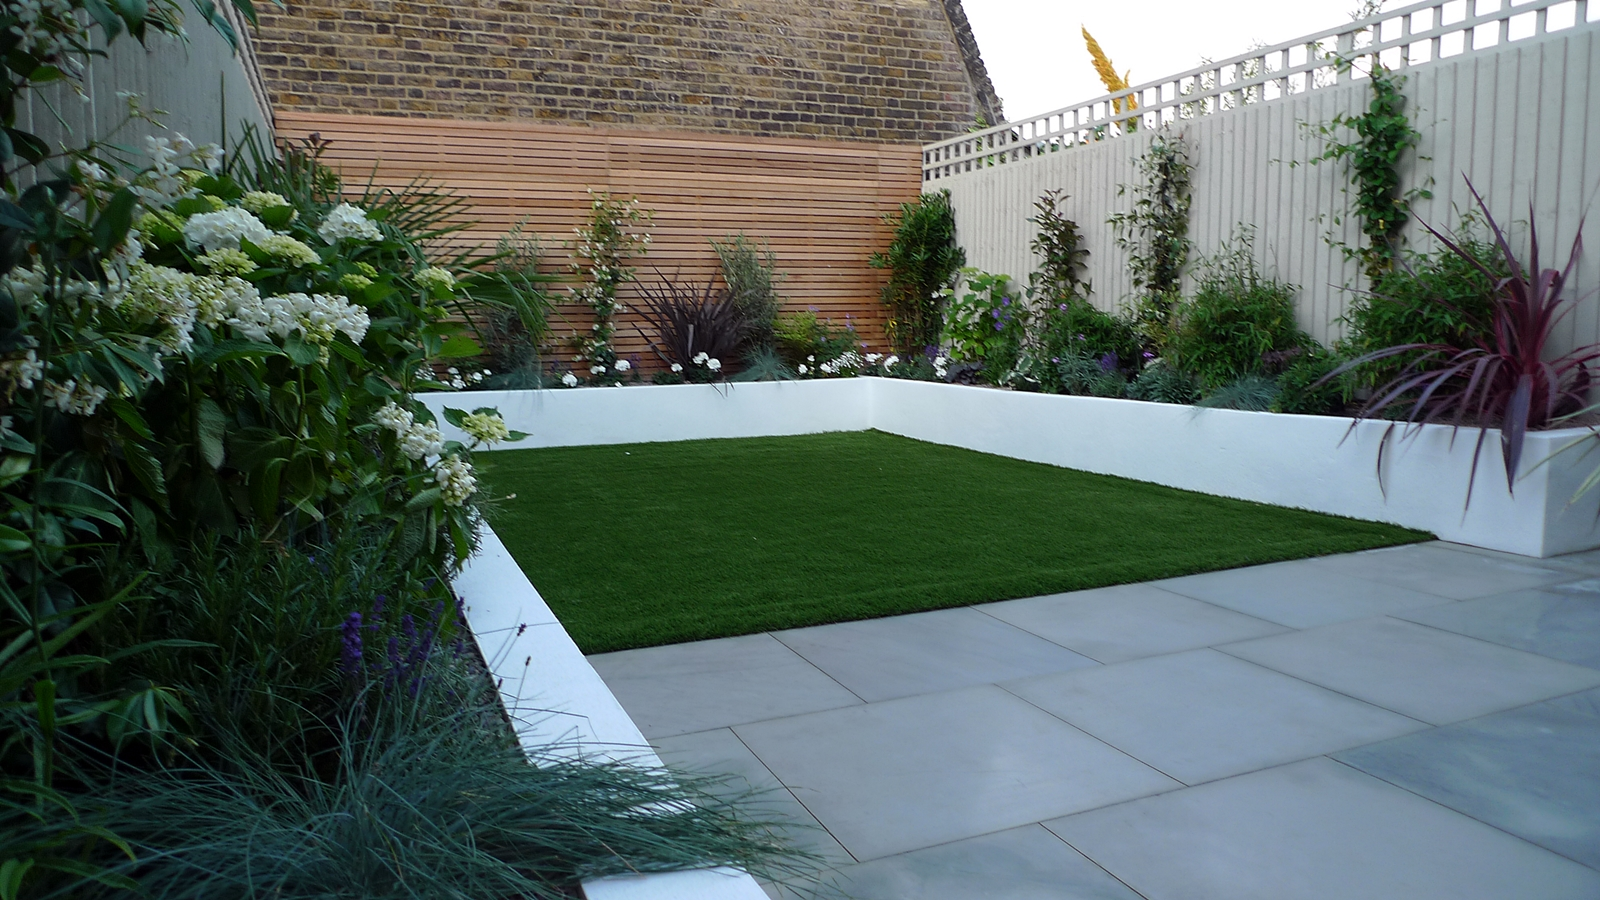 sawn grey sandstone paving raised rendered beds hardwood screen painted stone fence london small garden design (4)